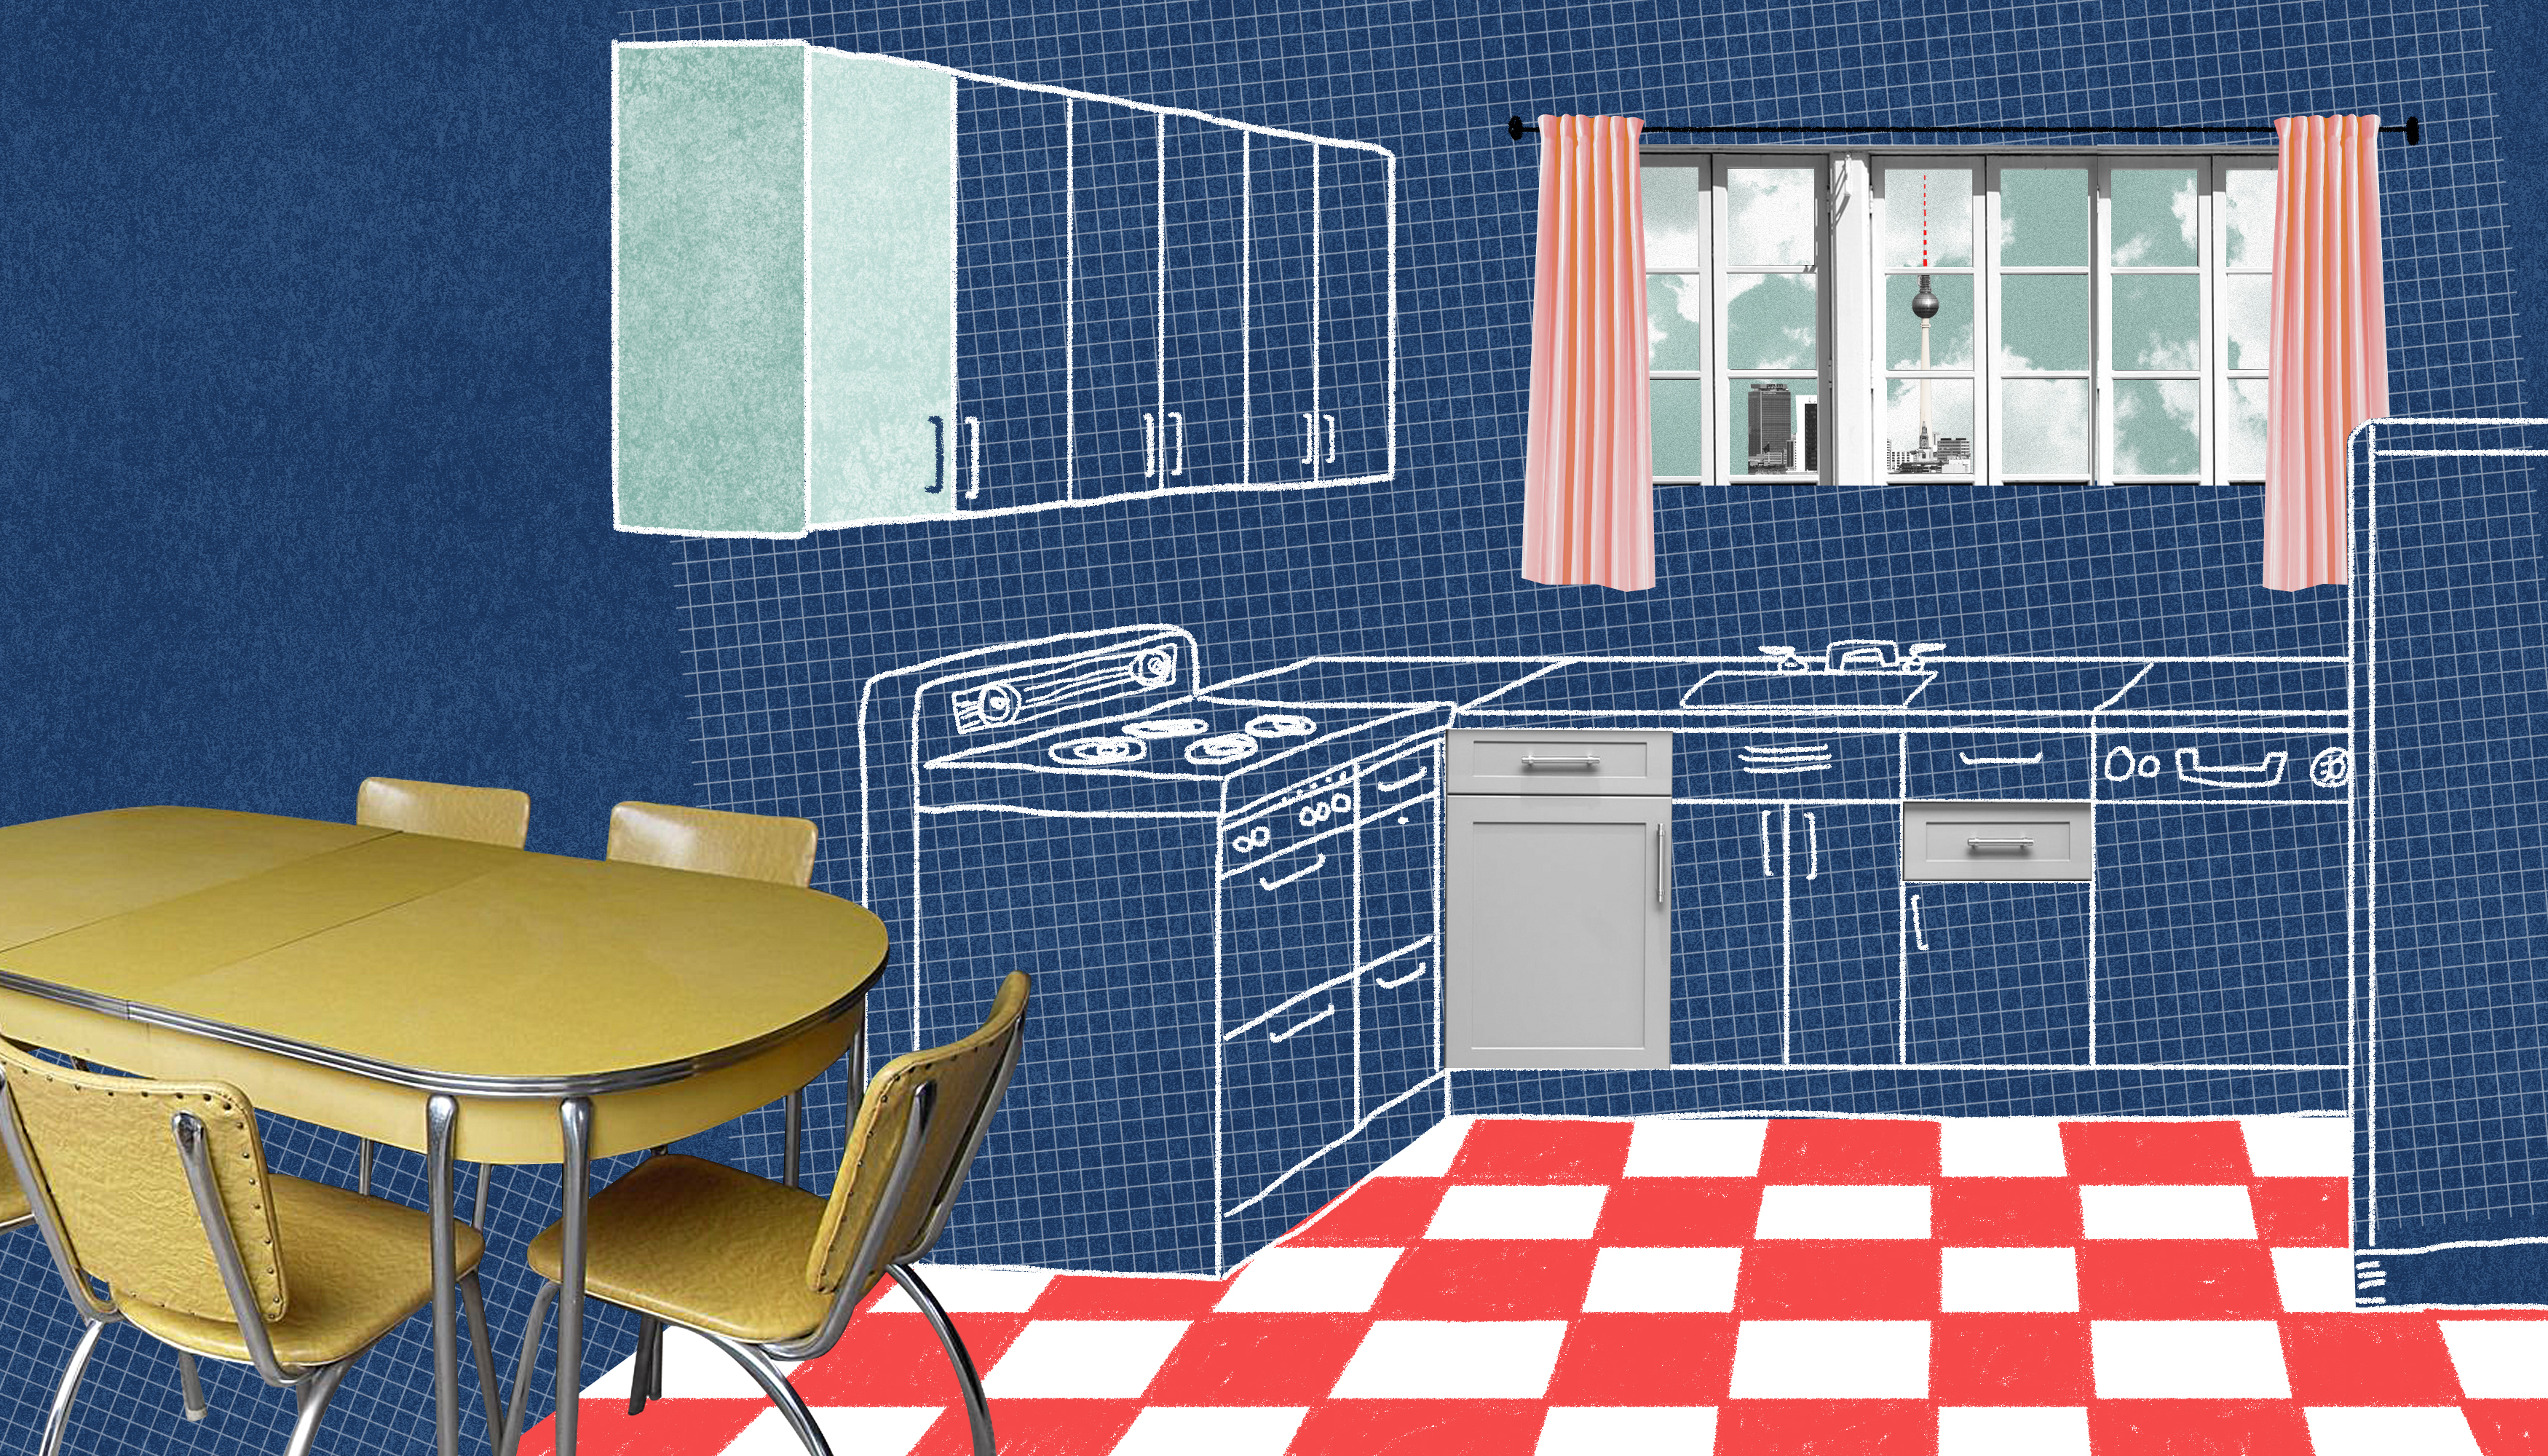 A 1950's style kitchen with a laminate table to the left and tiled checkered floors. Two pink curtains frame a window over the sink. Outside there is a view of the a tall, pointy television tower. Illustration.